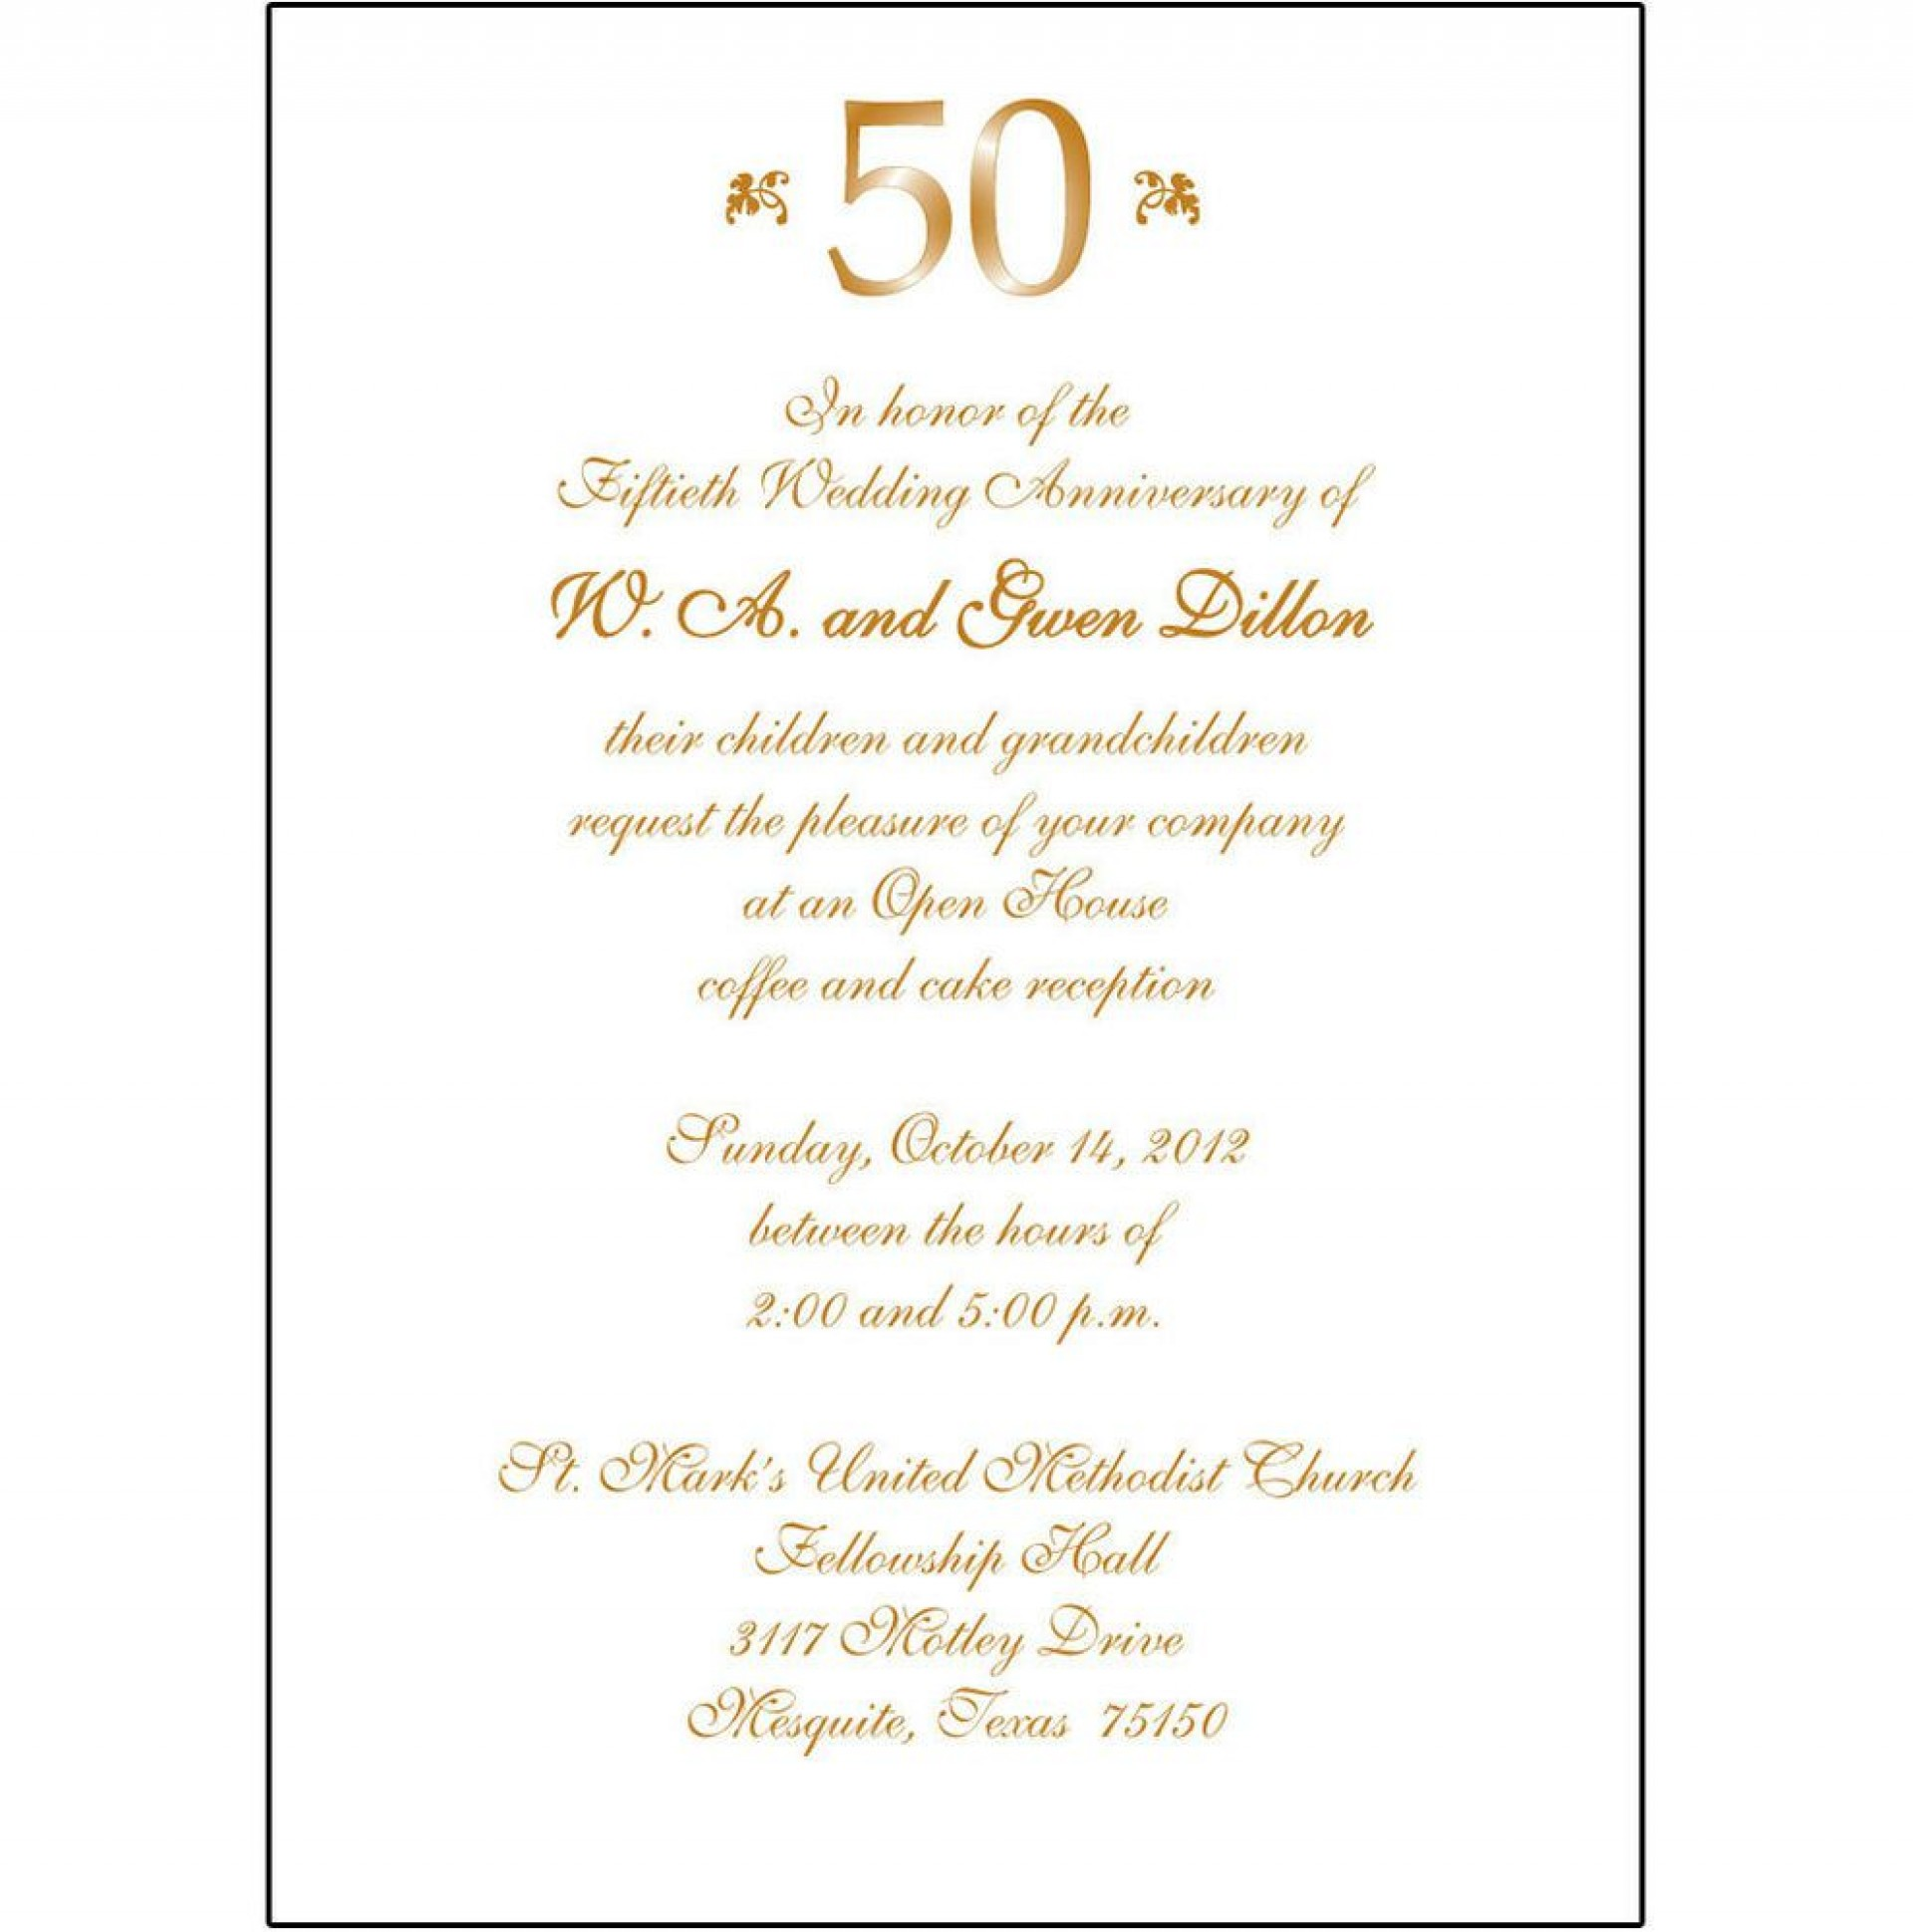 008 Exceptional Free 50th Anniversary Invitation Template For Word Sample 1920